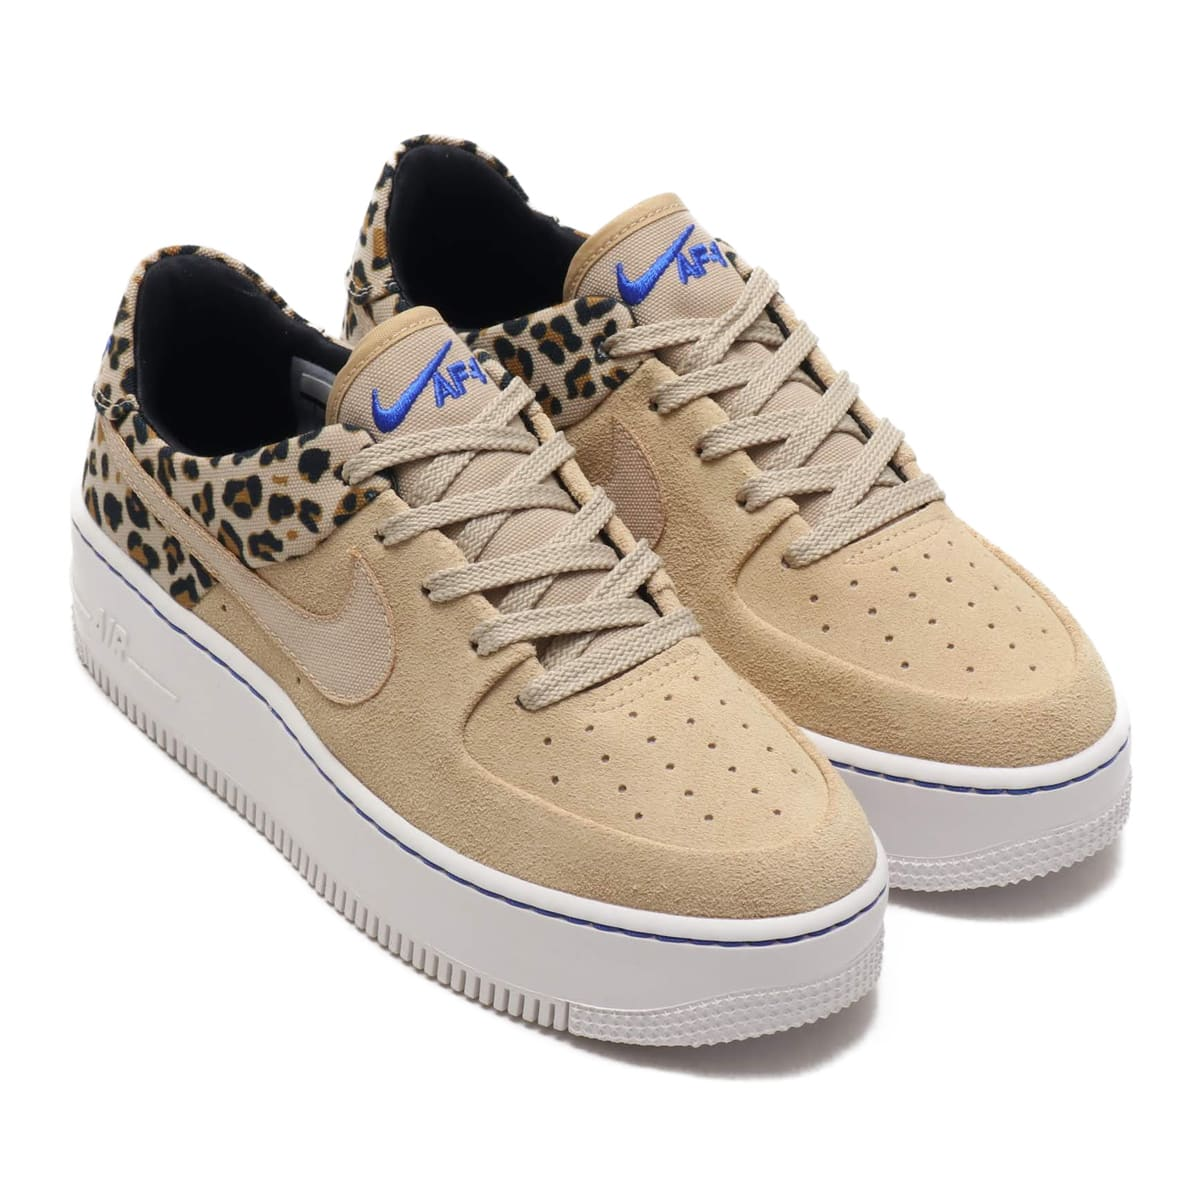 NIKE W AIR FORCE 1 SAGE LO PRM DESERT ORE/RACER BLUE-BLACK-WHEAT 19SP-I_photo_large